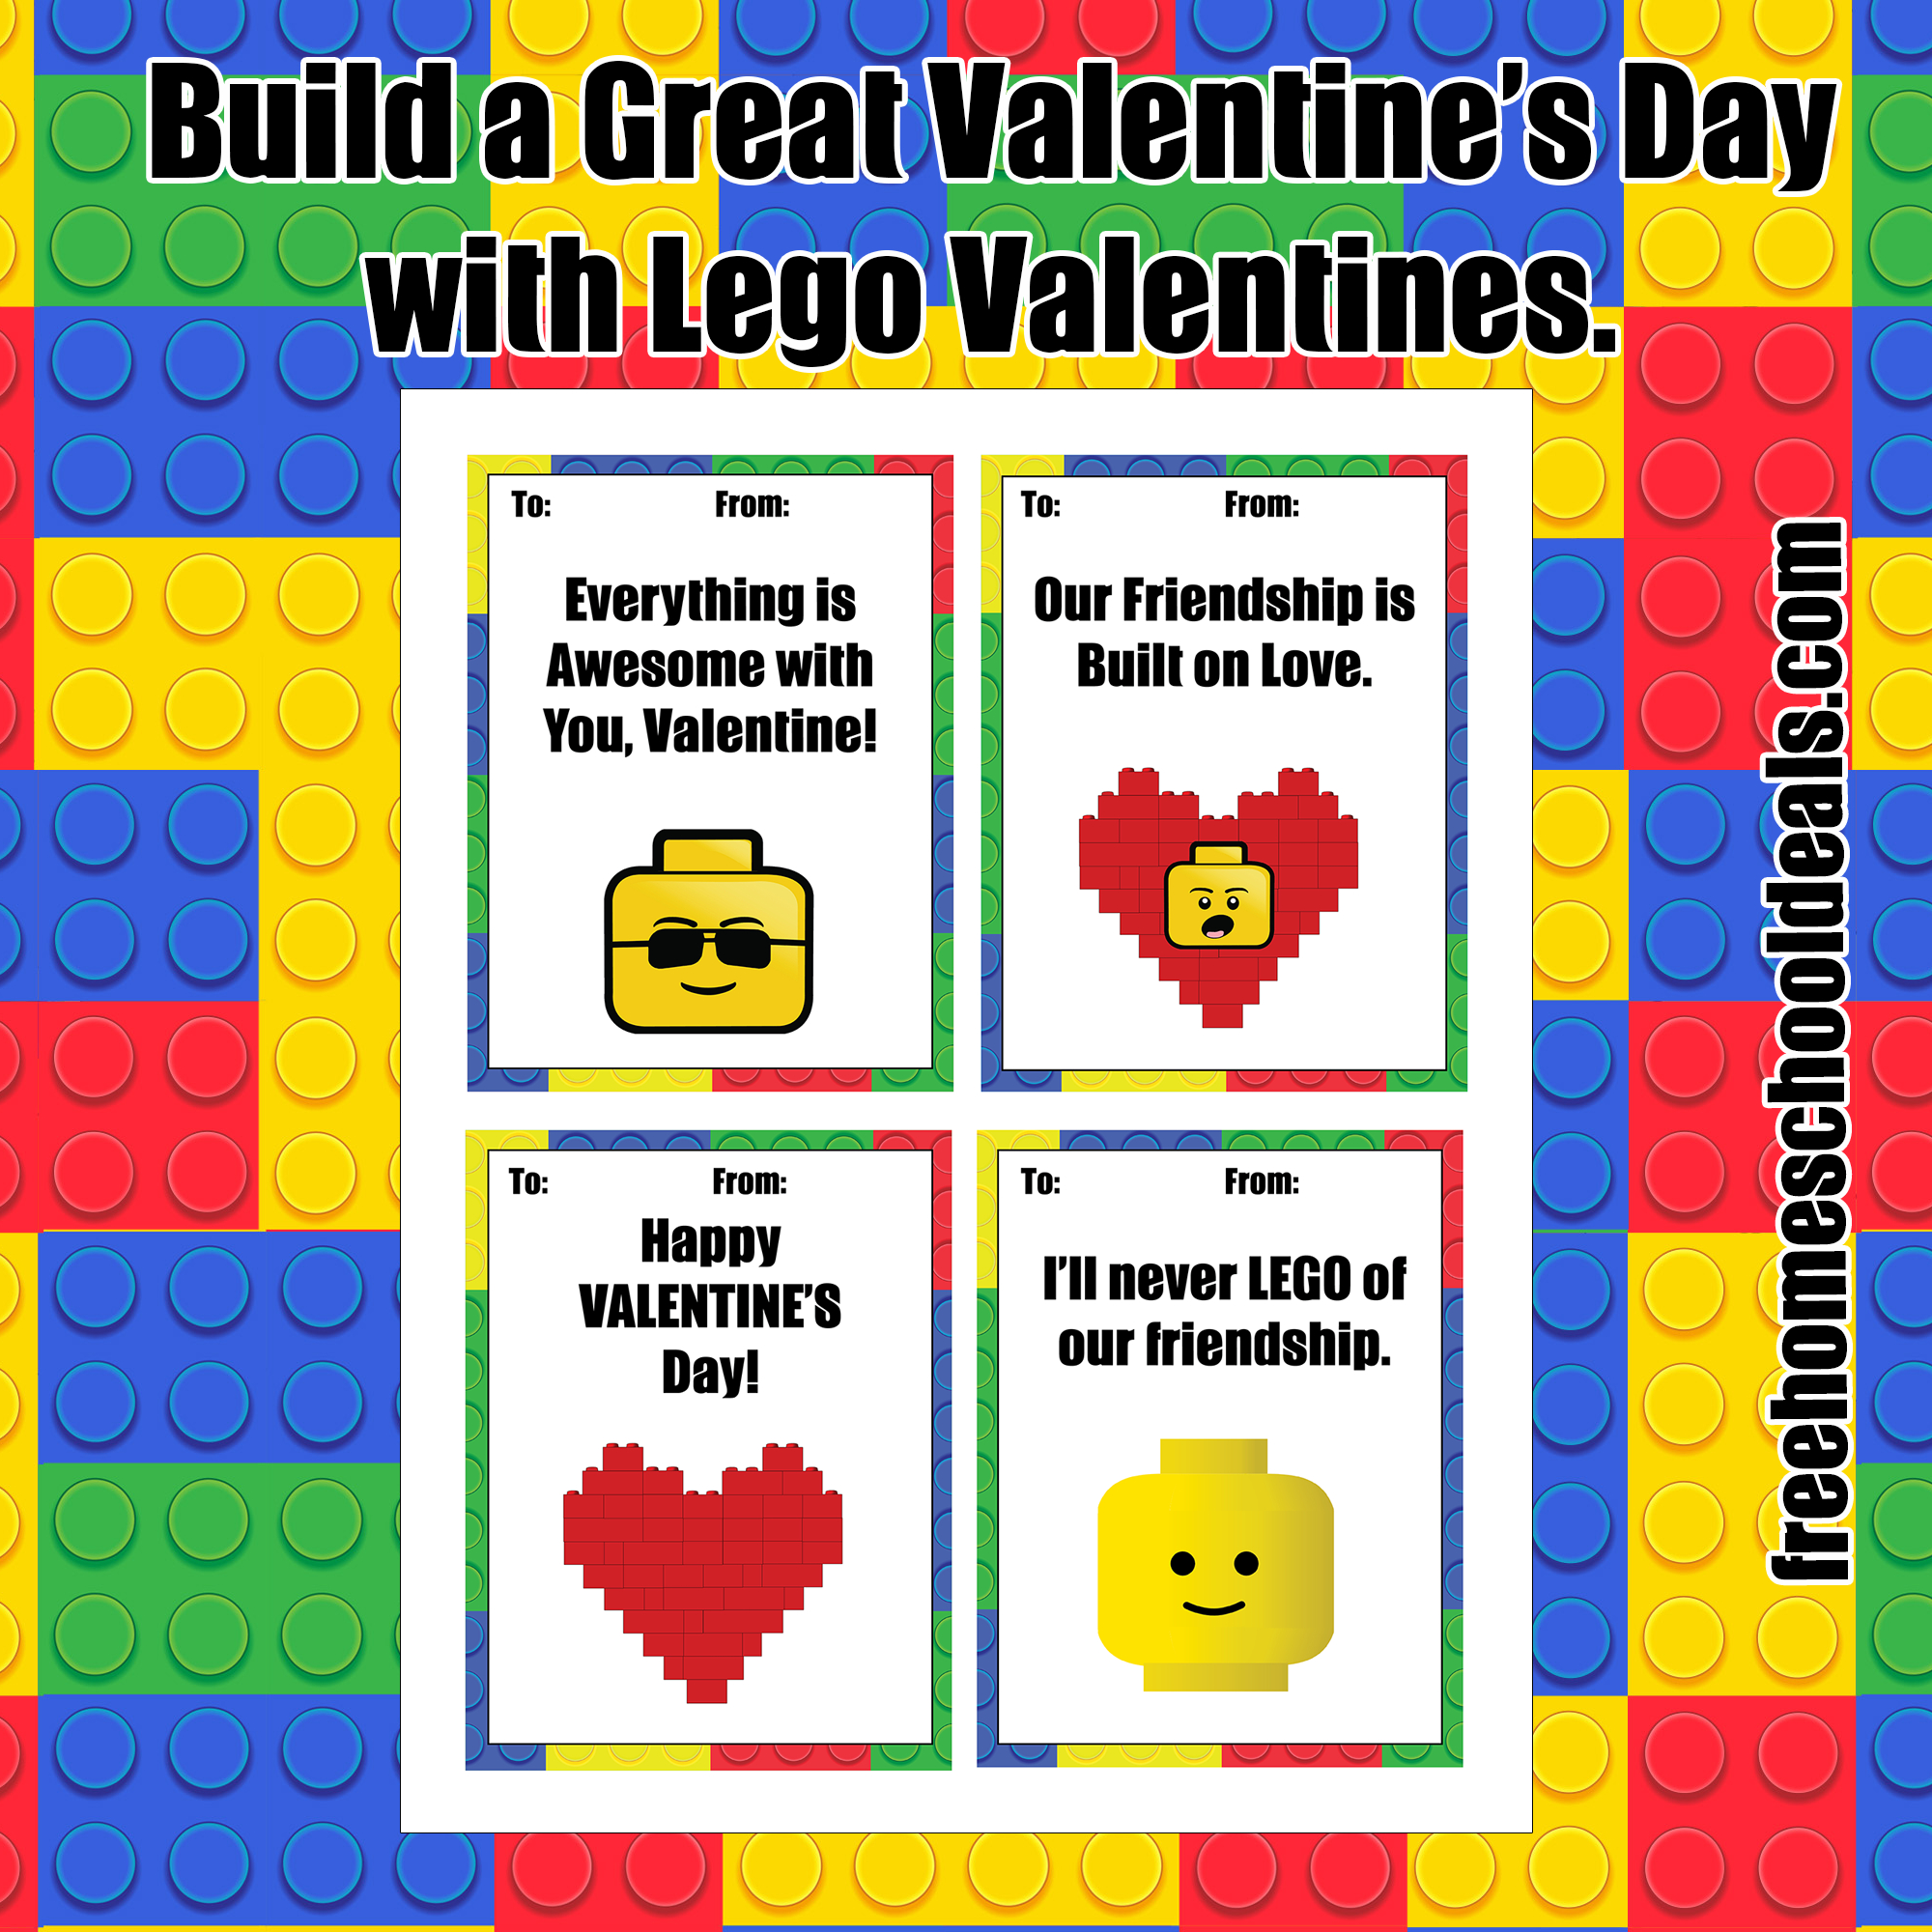 Free Printable Lego Valentines! (Instant Download) | Free Homeschool - Free Printable Lego Star Wars Valentines